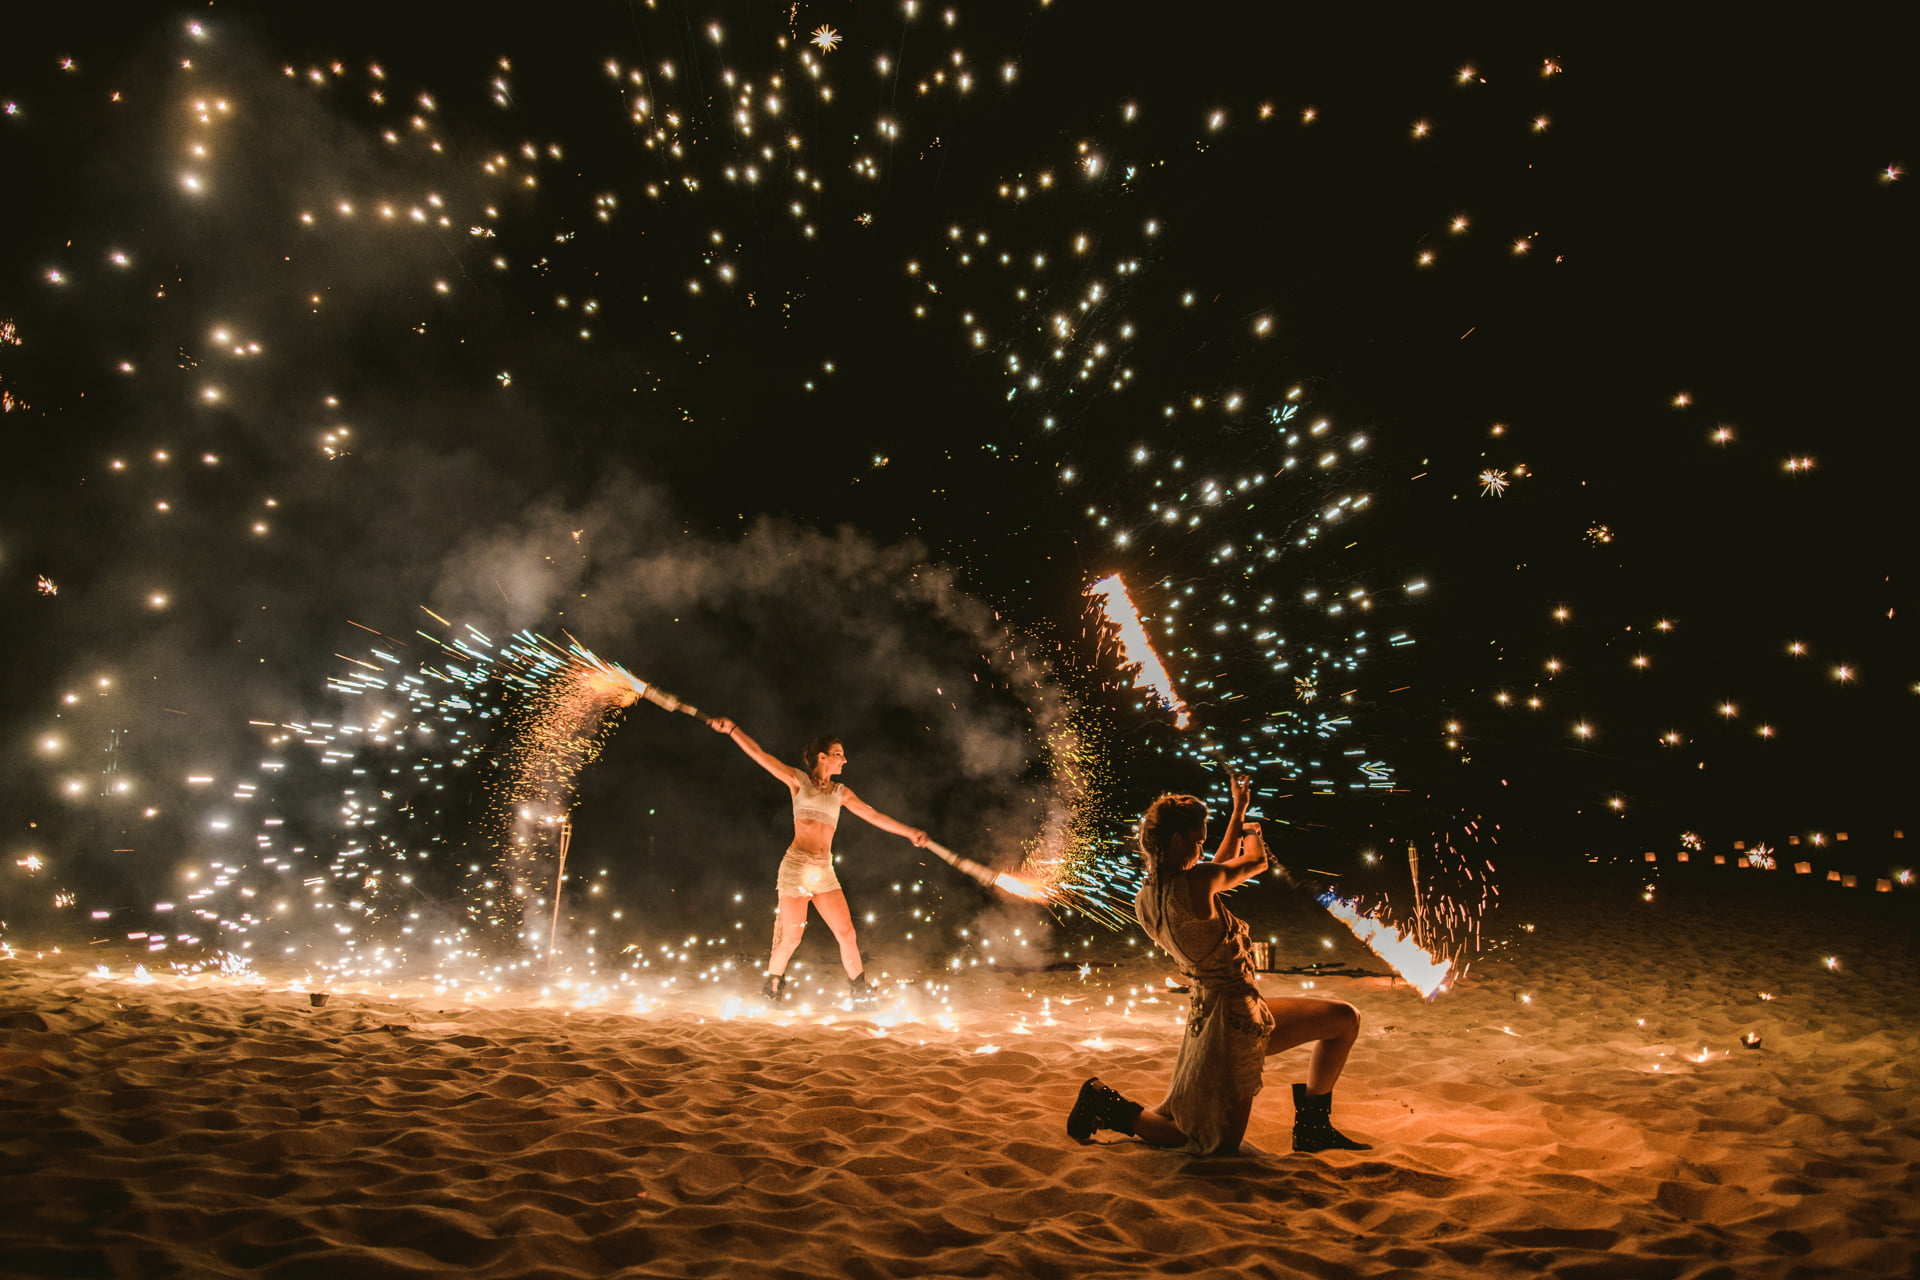 Discover the most epic entertainment ideas for destination weddings, from music to the menu and sun-up to sundown. Ready to make it awesome?